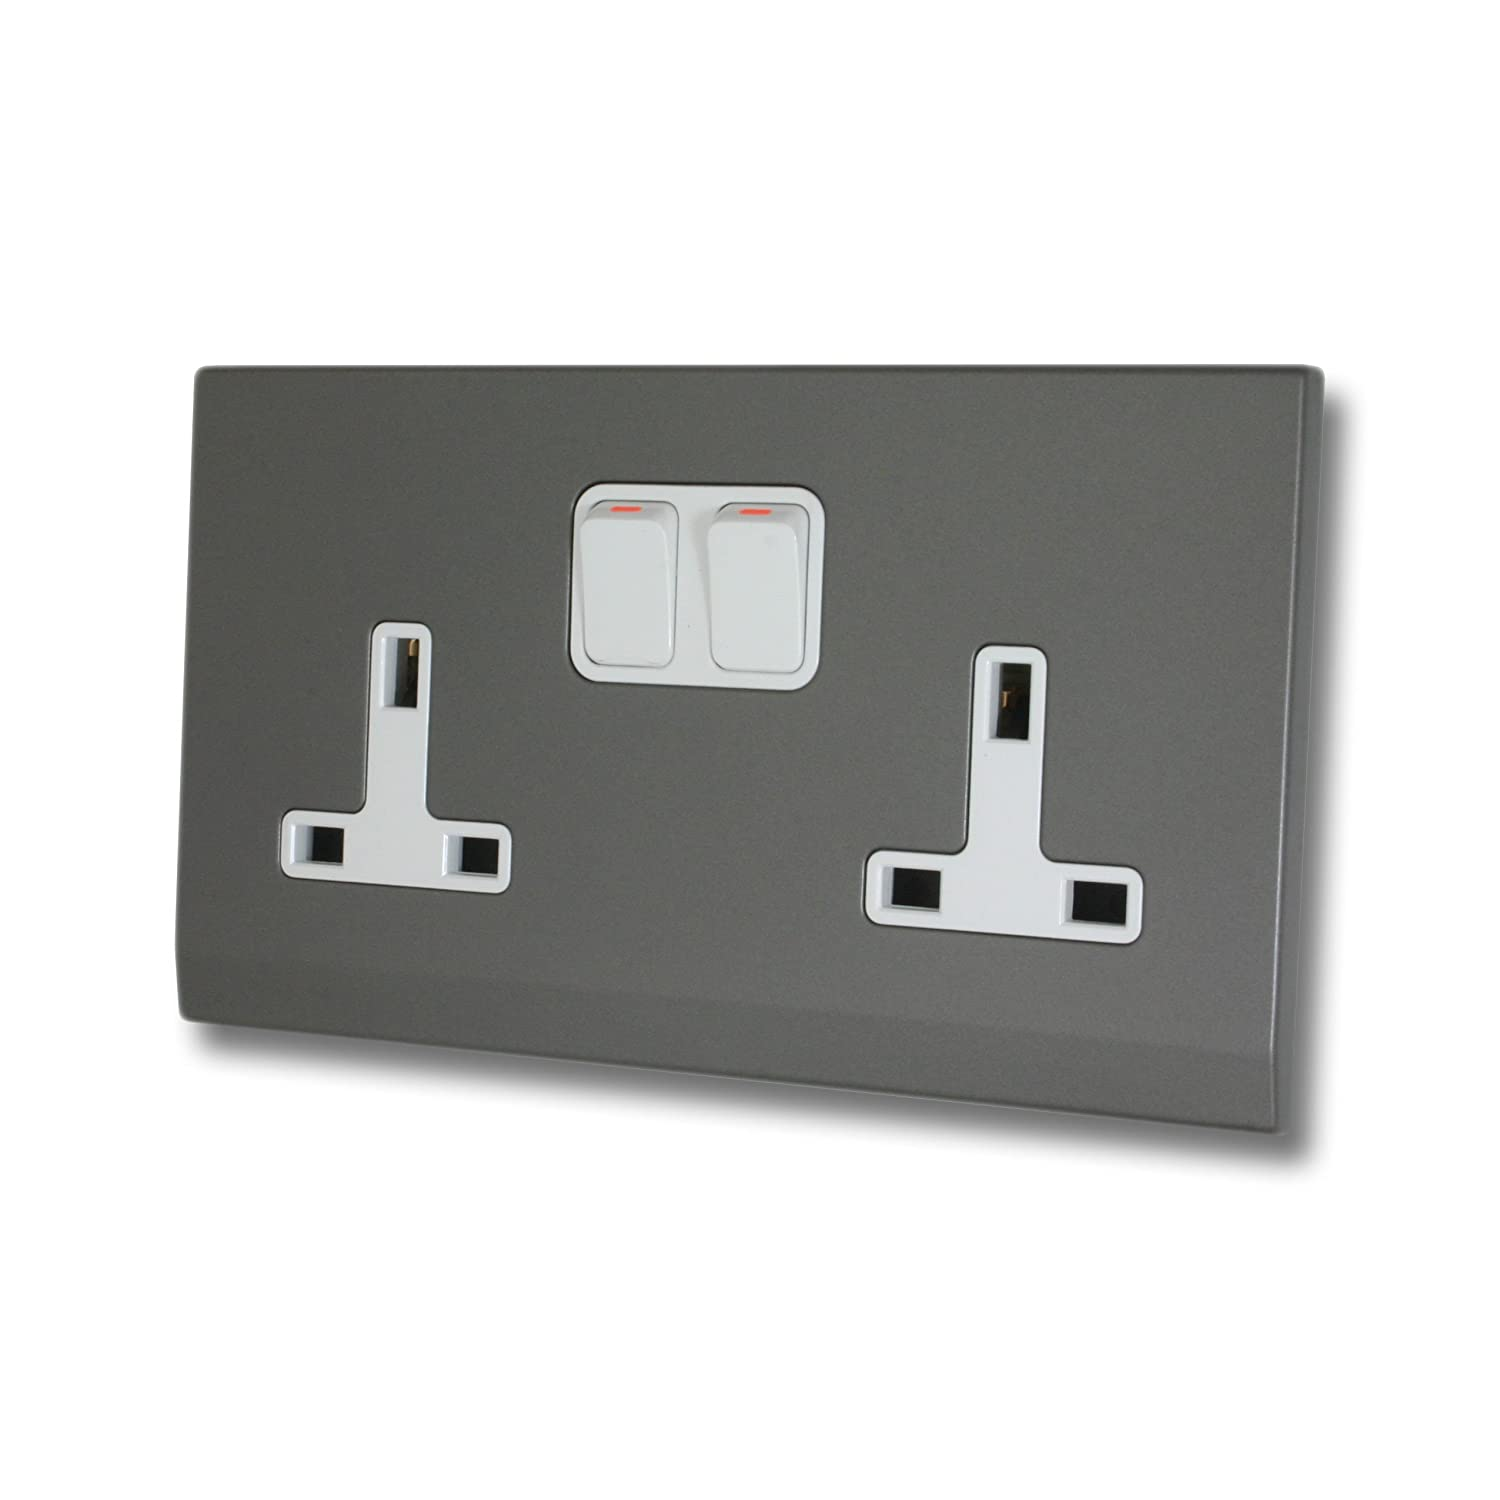 Retrotouch Simplicity 07442 Screwless Mid Grey 13A Double Socket